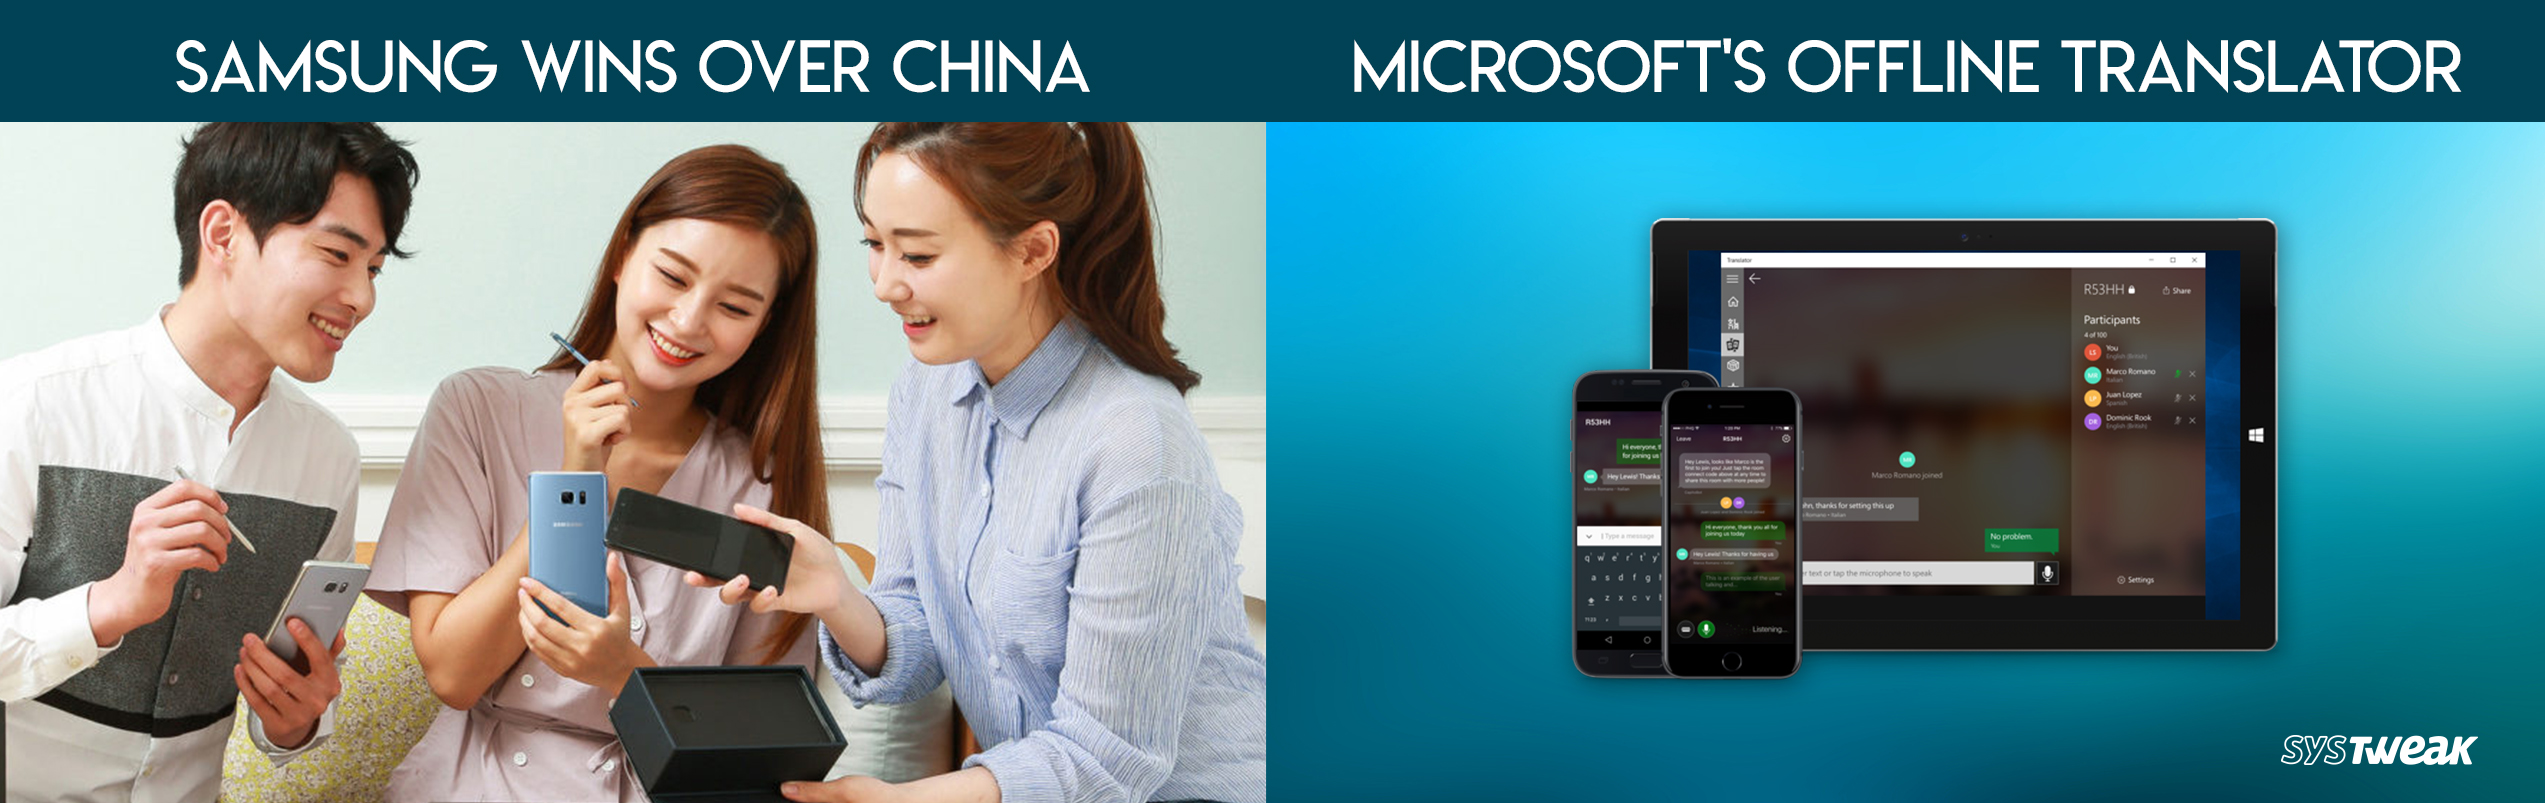 Newsletter : Samsung Can Now Sell Phones In China & Microsoft Translator Available Offline For All